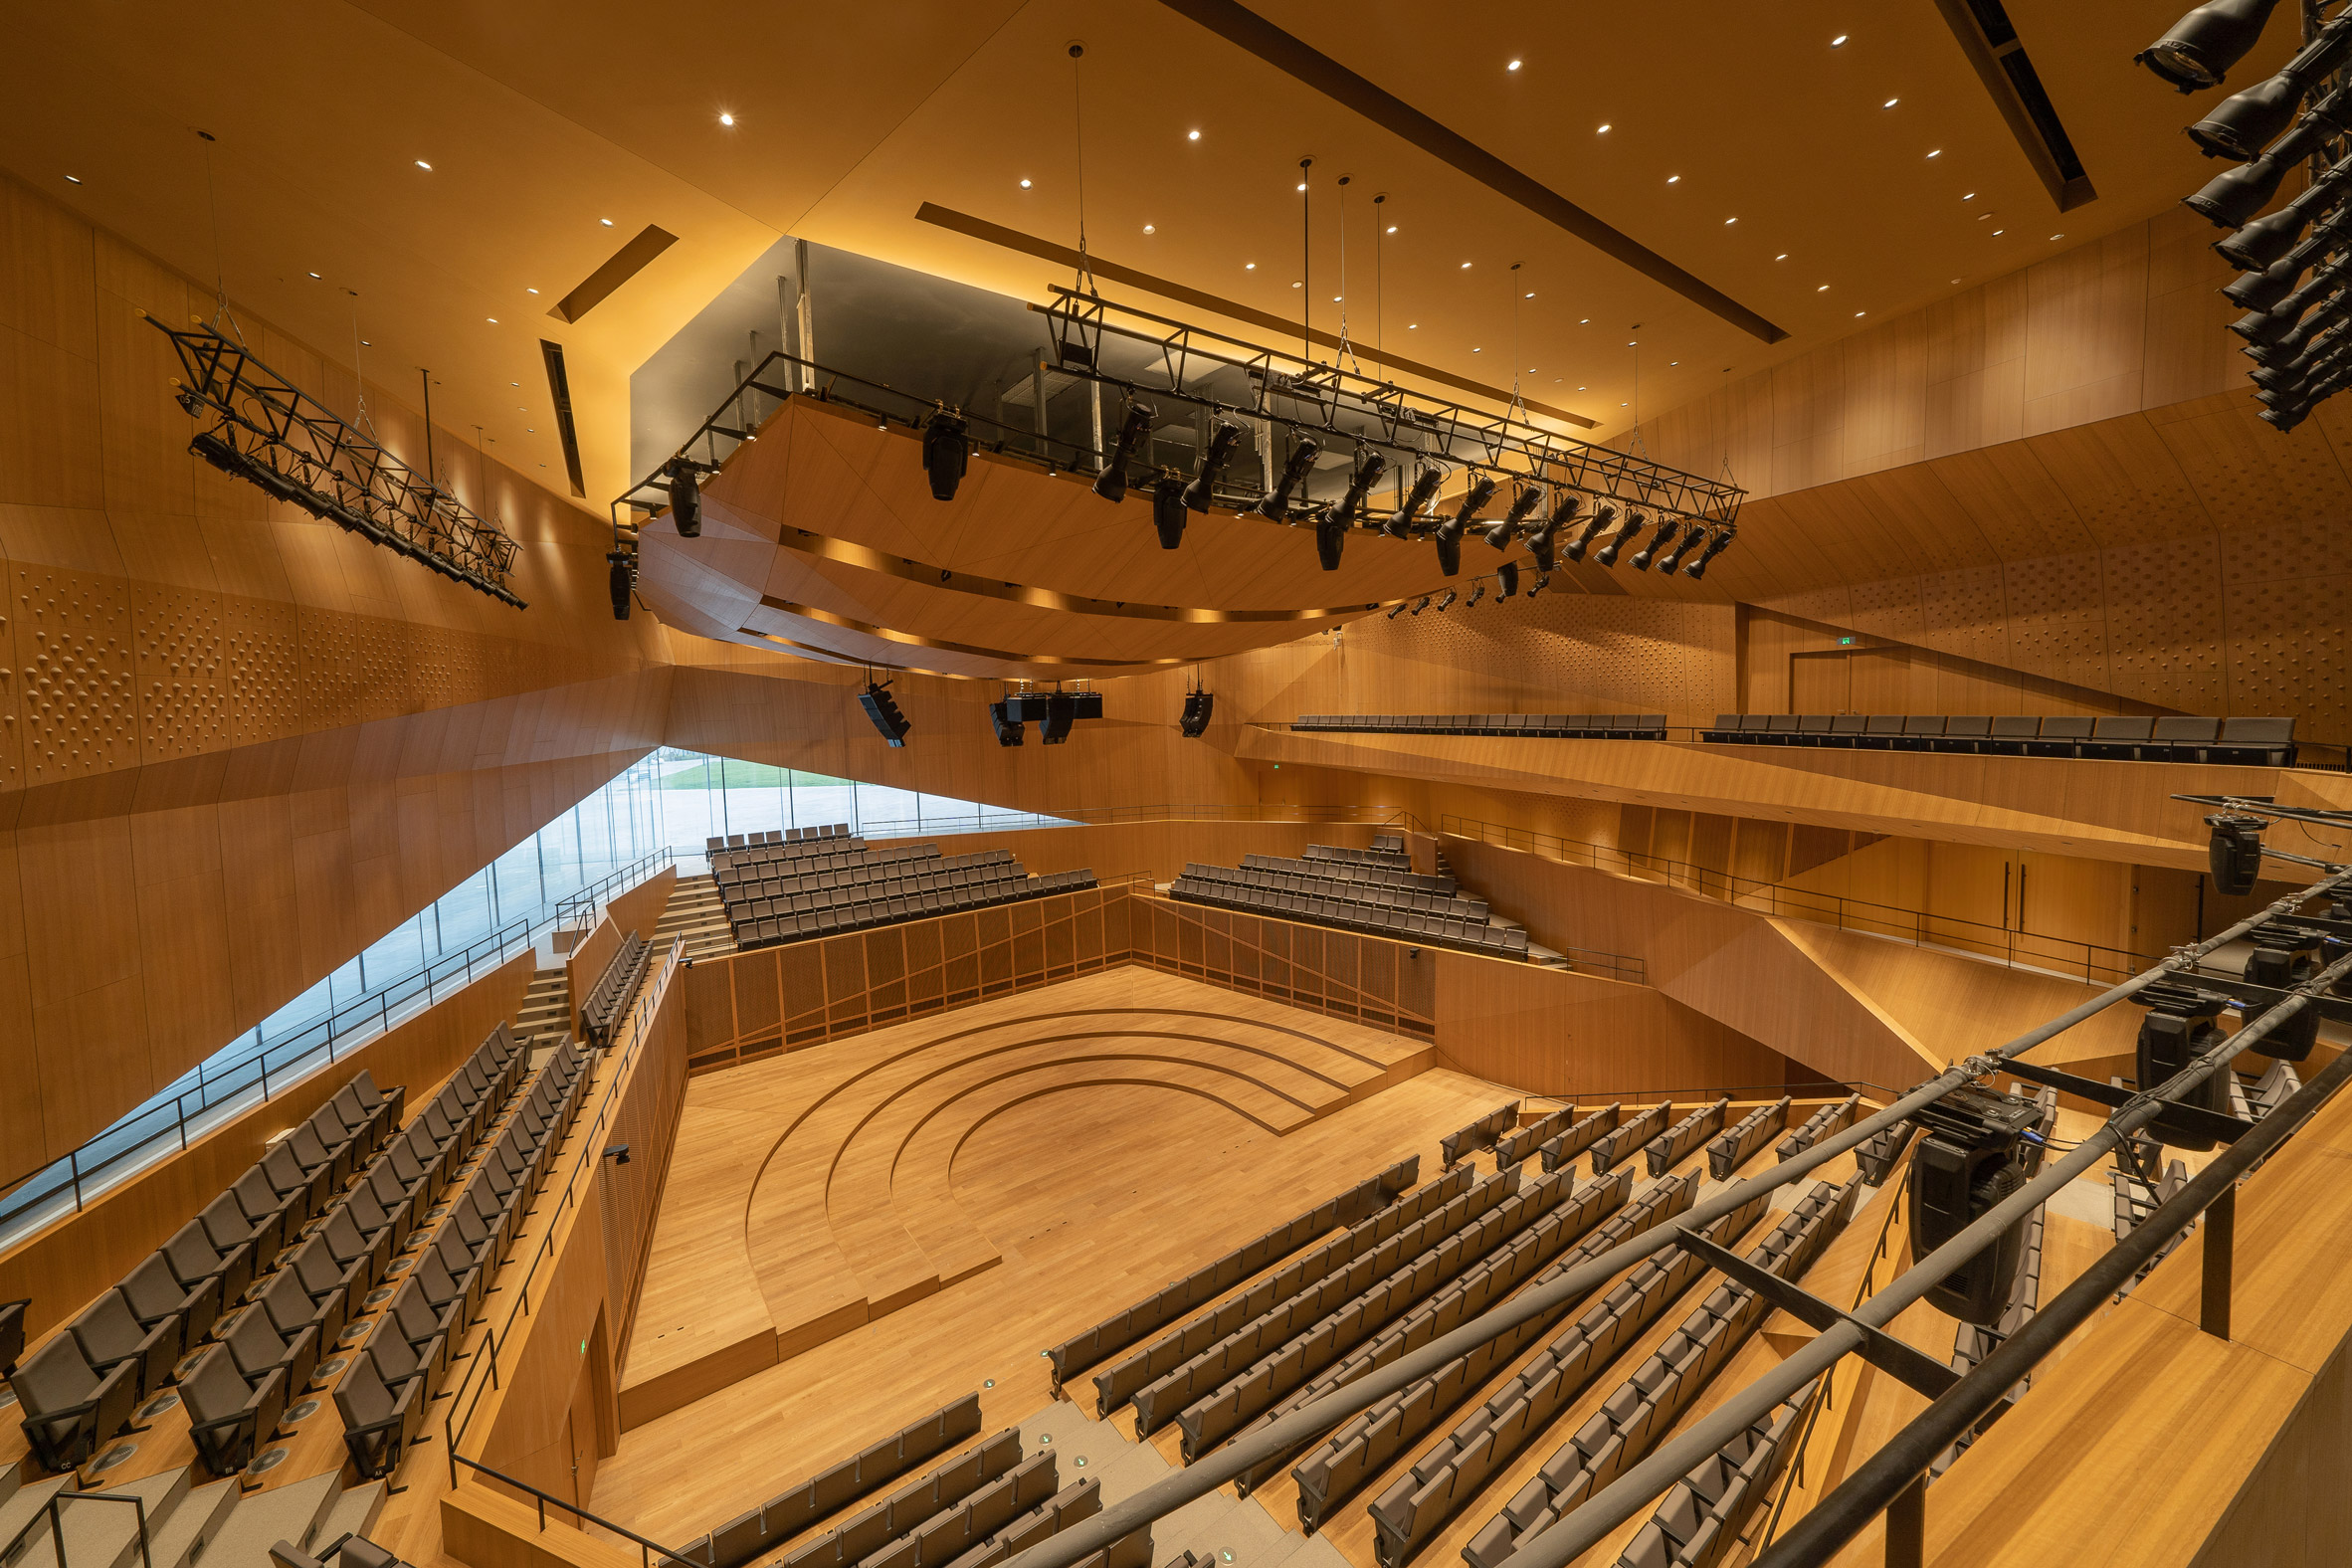 A wood-lined concert hall